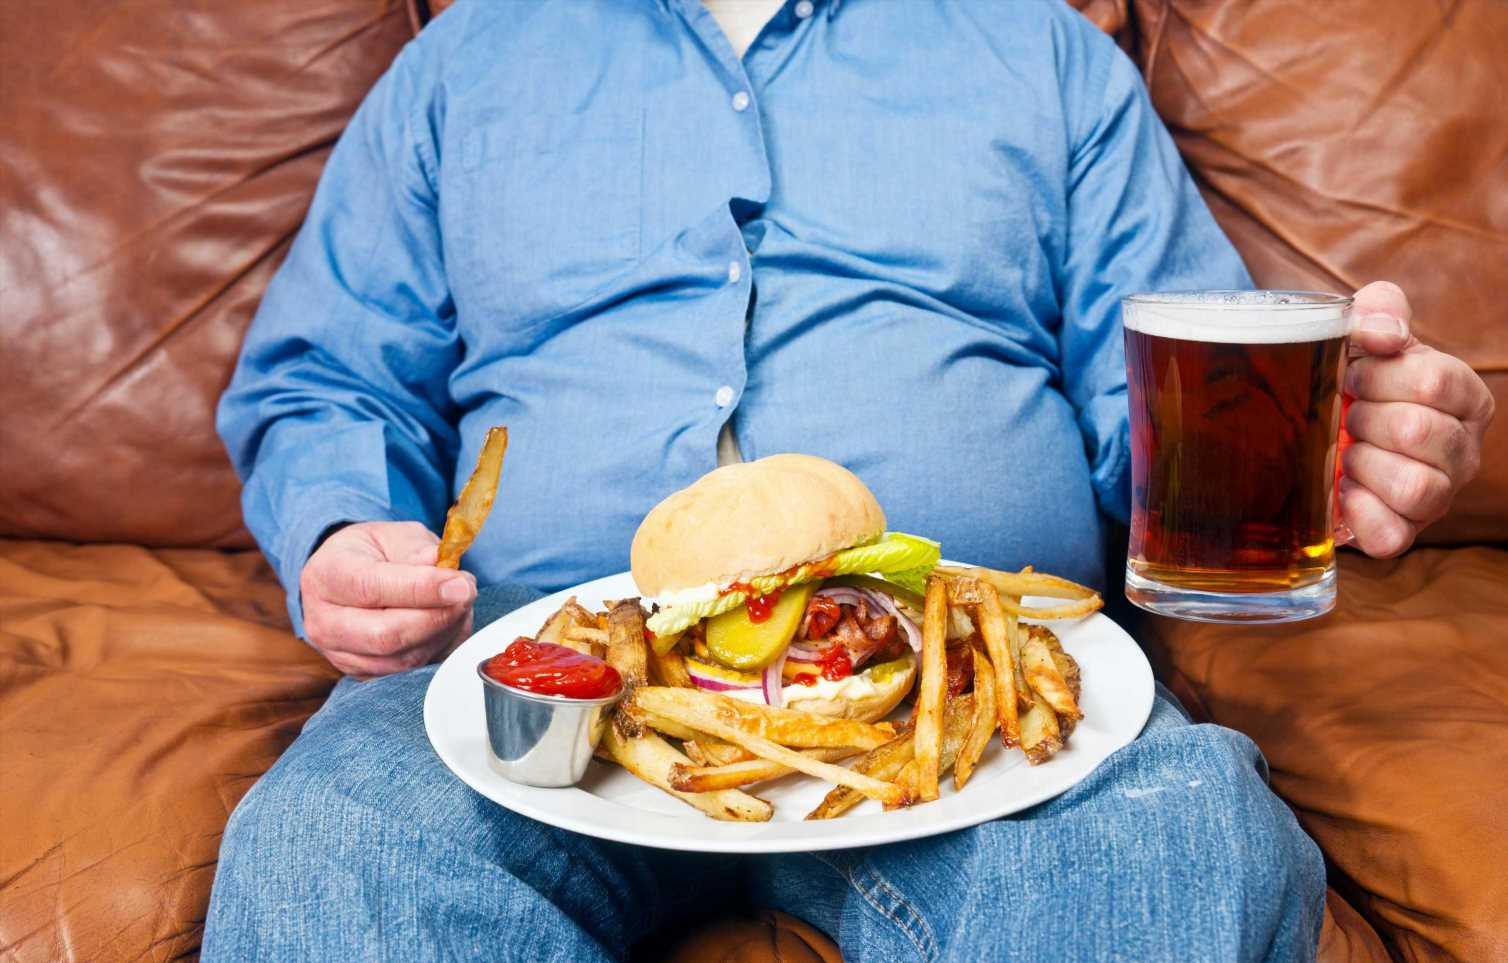 Fresh crackdown on junk food launched in post-Covid war on obesity, Queen's Speech reveals